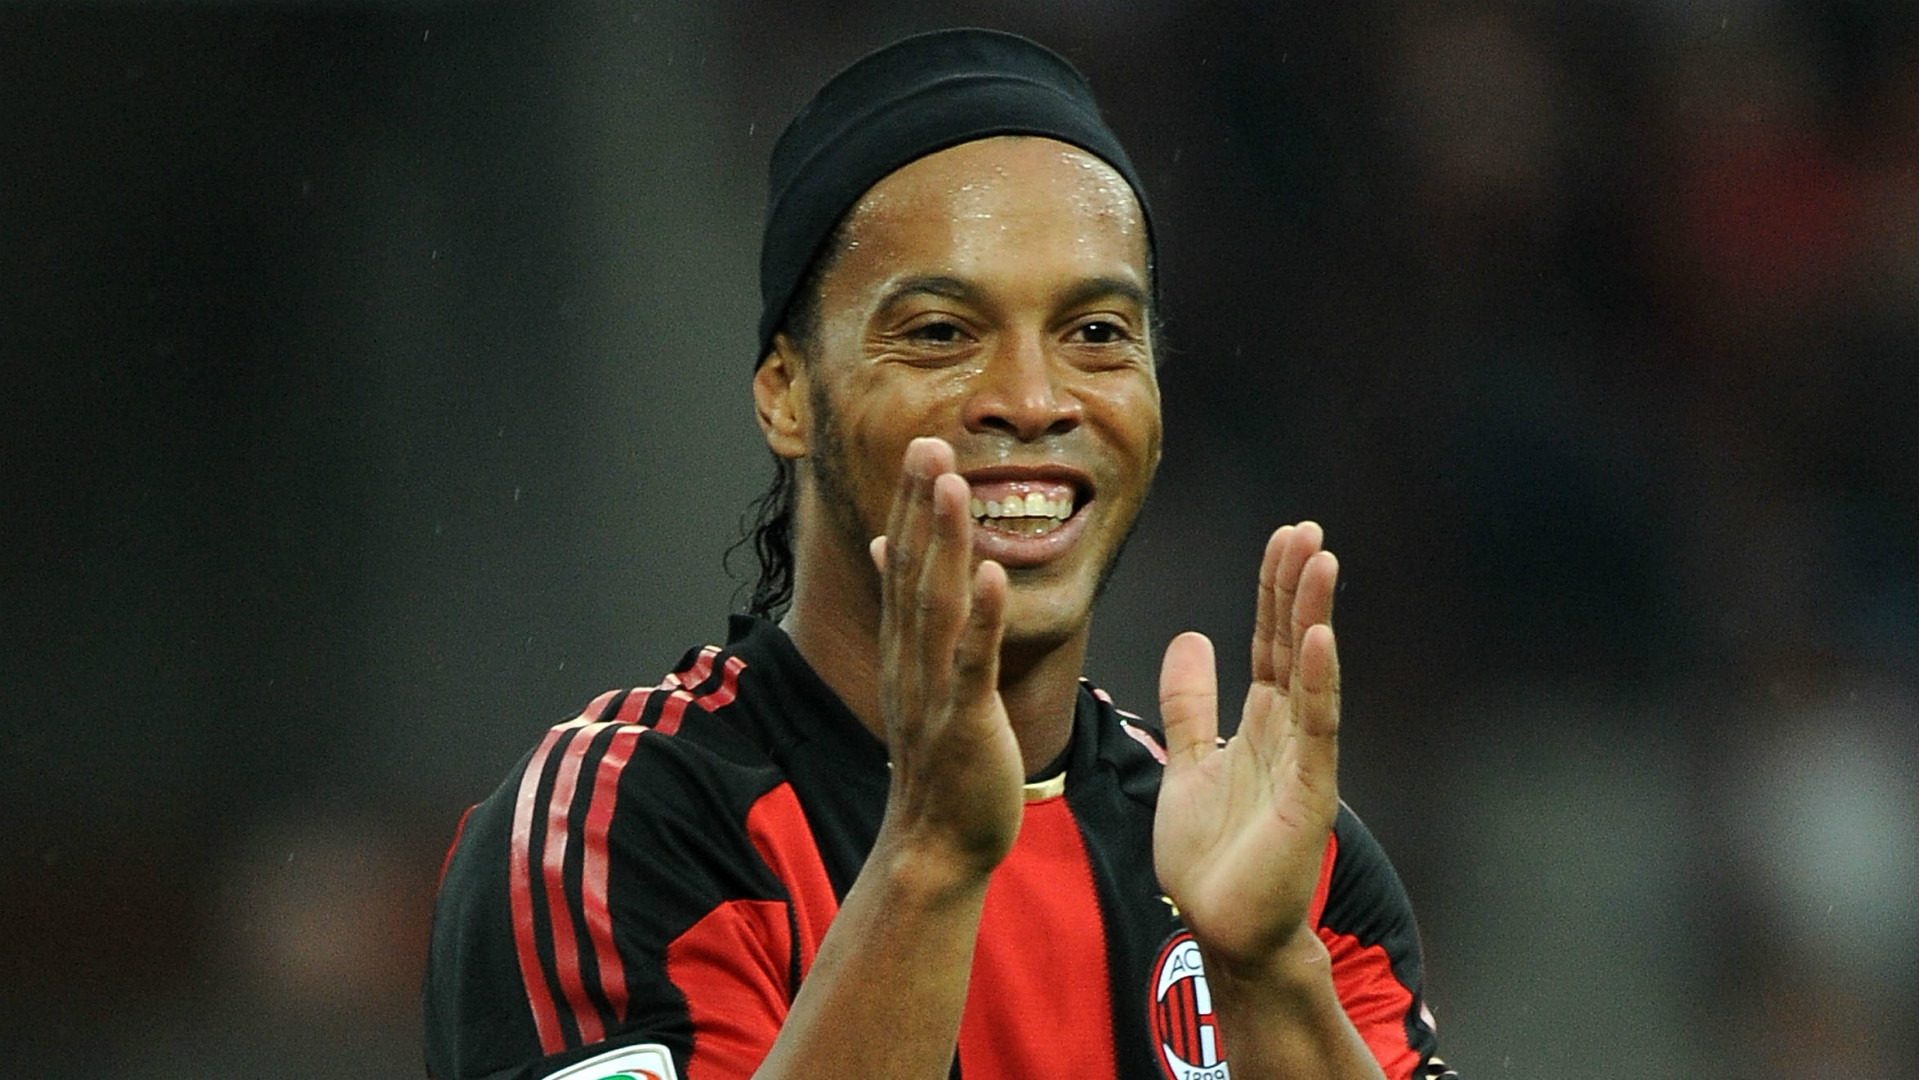 http://images.performgroup.com/di/library/GOAL_INTERNATIONAL/8/f8/ronaldinho-ac-milan_kqet4xh3sr311df6ew77ldrxt.jpg?t=1671444360